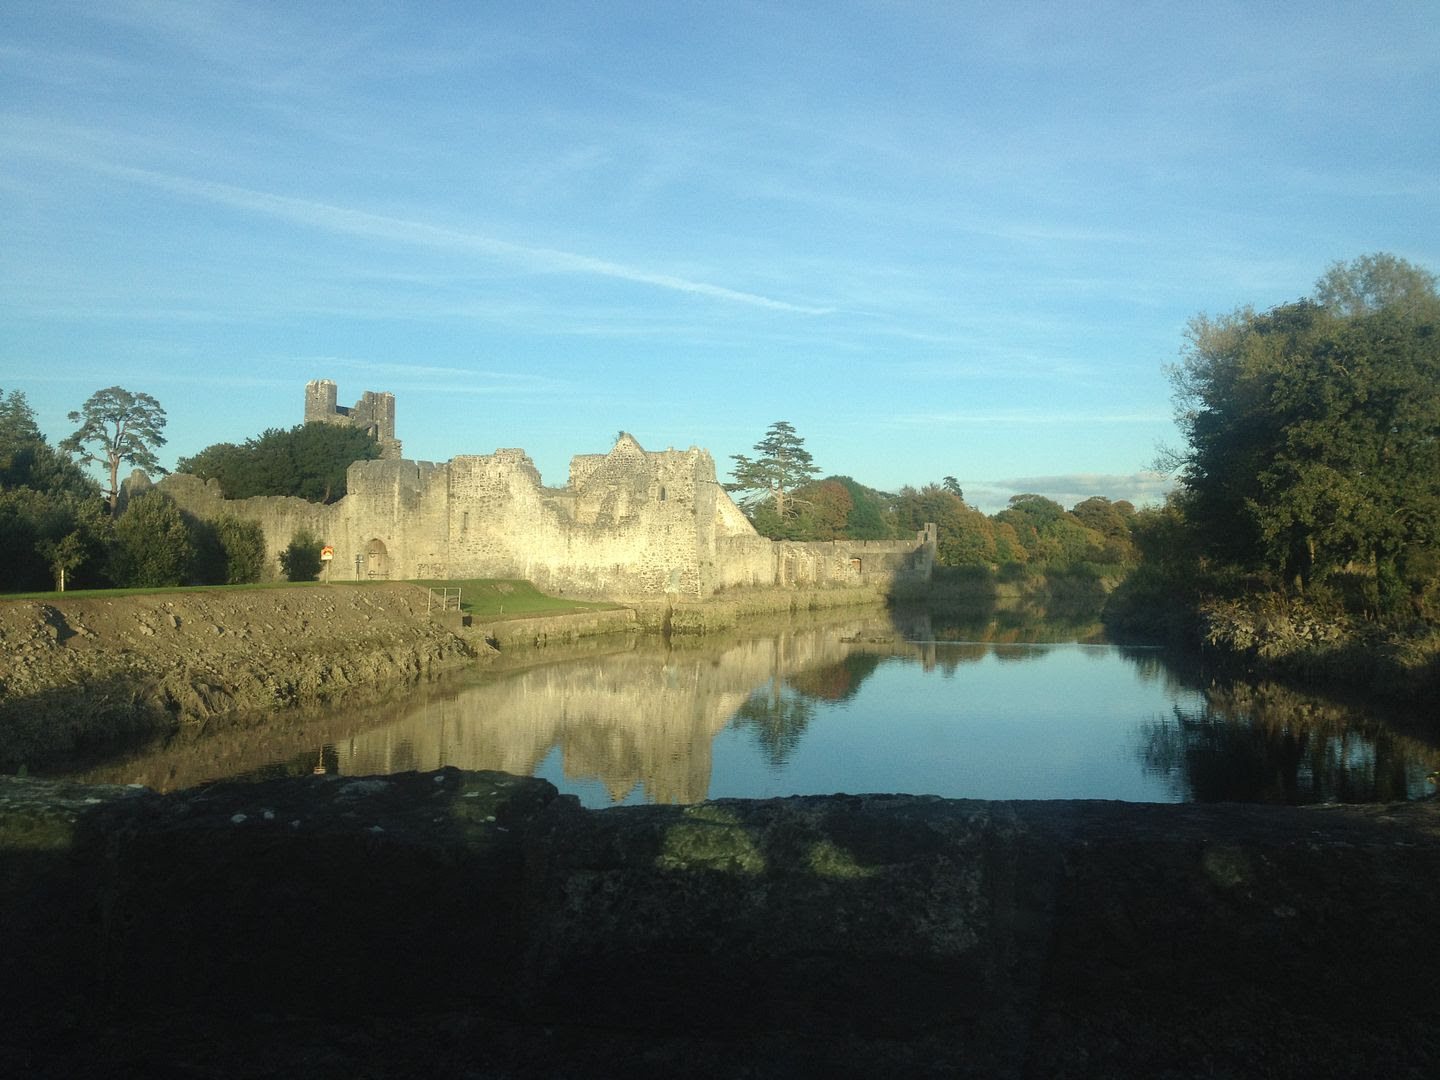 Cong, Ireland photo 2015-10-13 17.52.46_zps6fnbwjs2.jpg